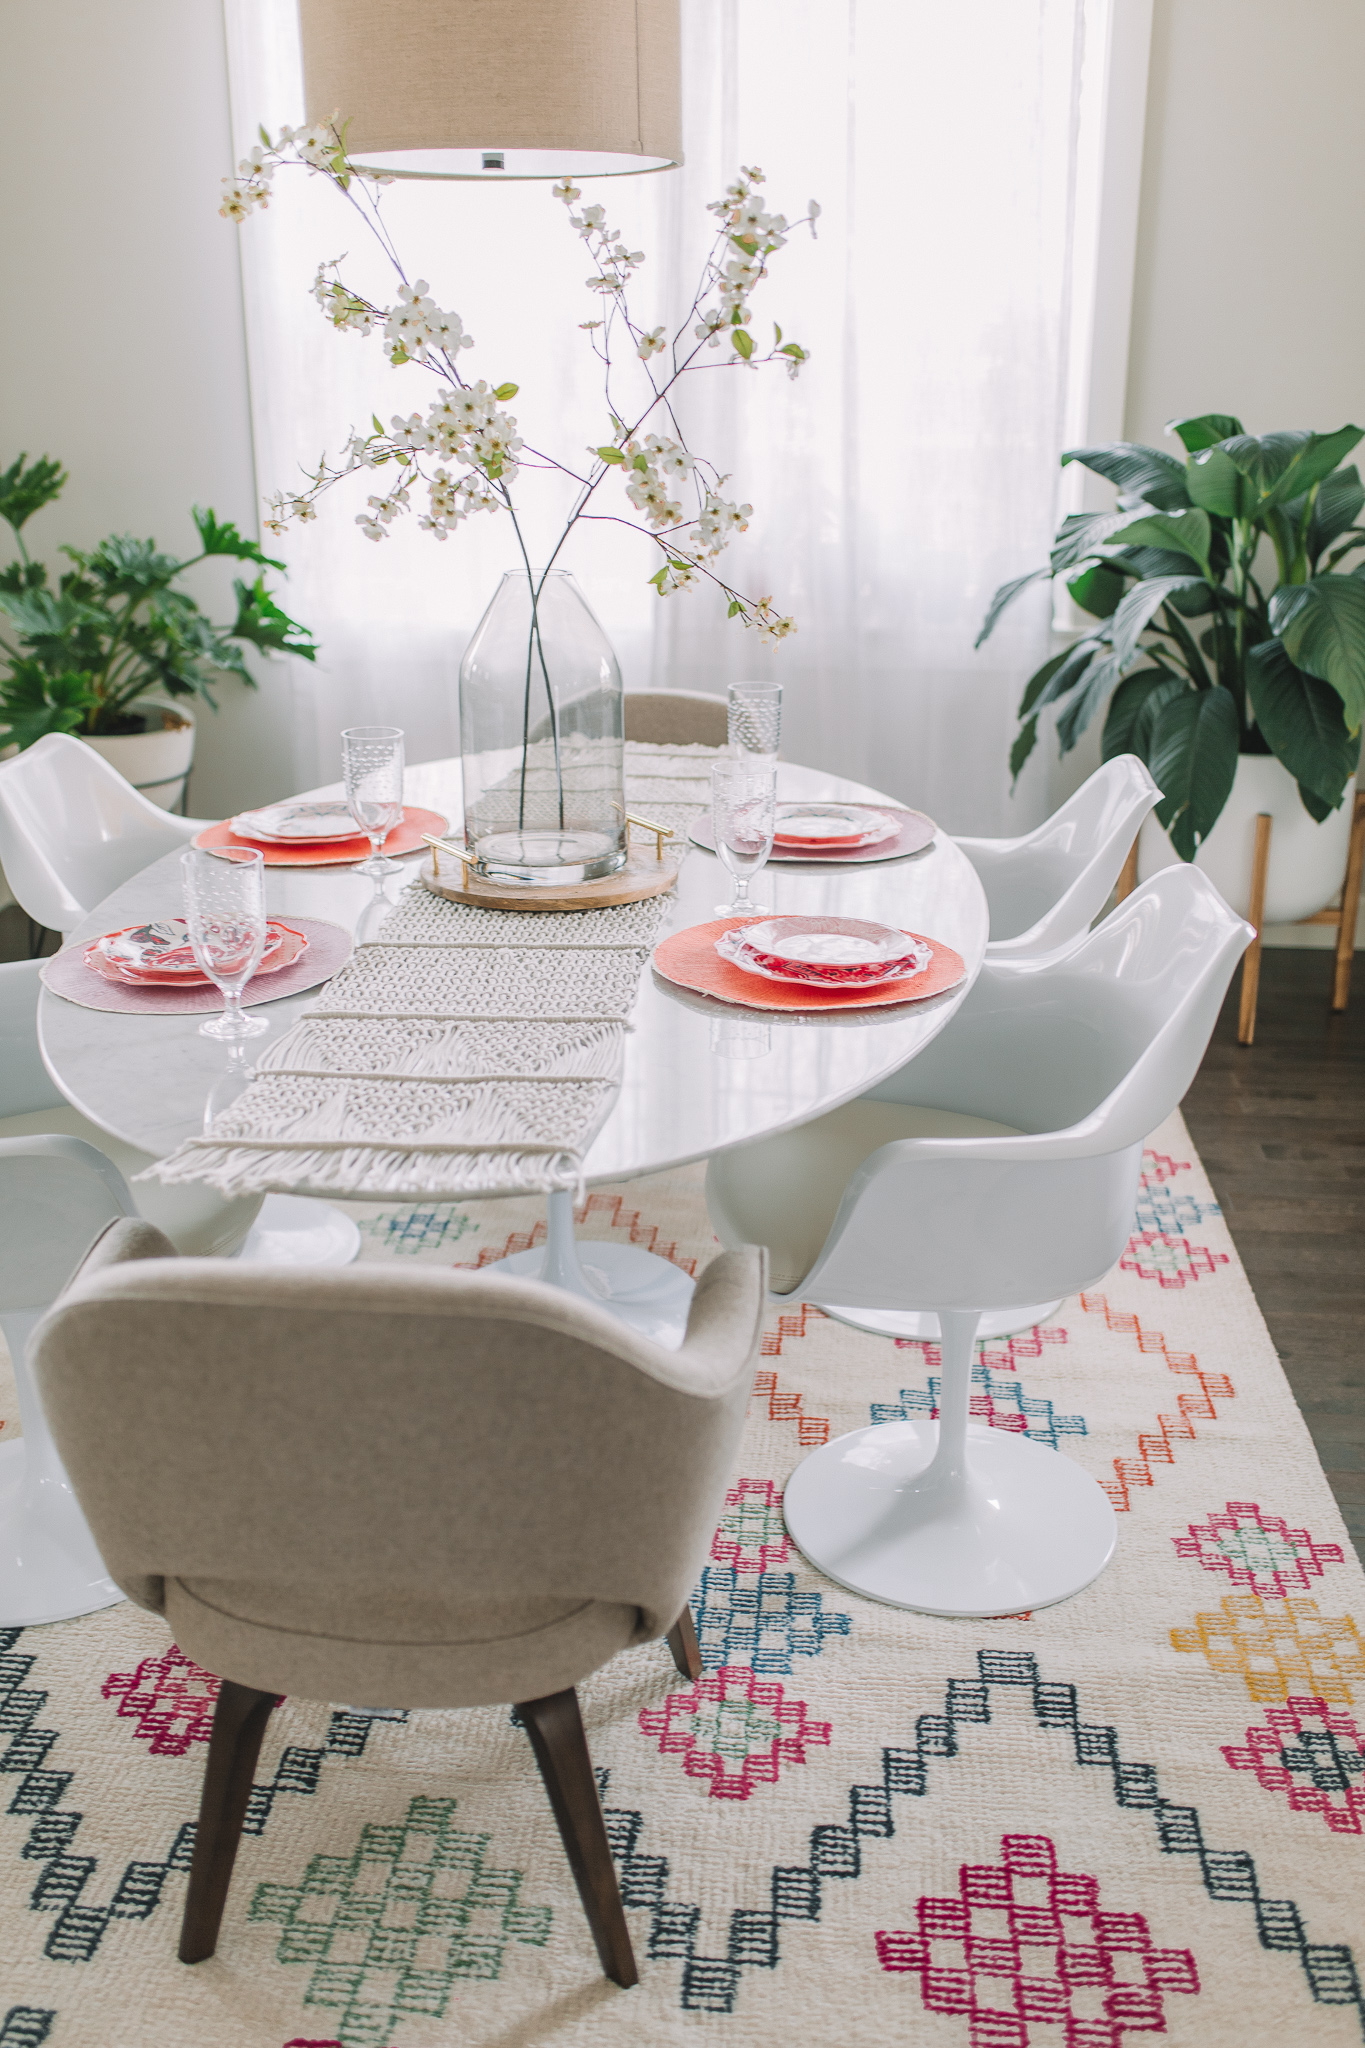 Dining Room Reveal Rovce Concepts Marble Tulip Table Gypsy Tan - Rove concepts tulip table